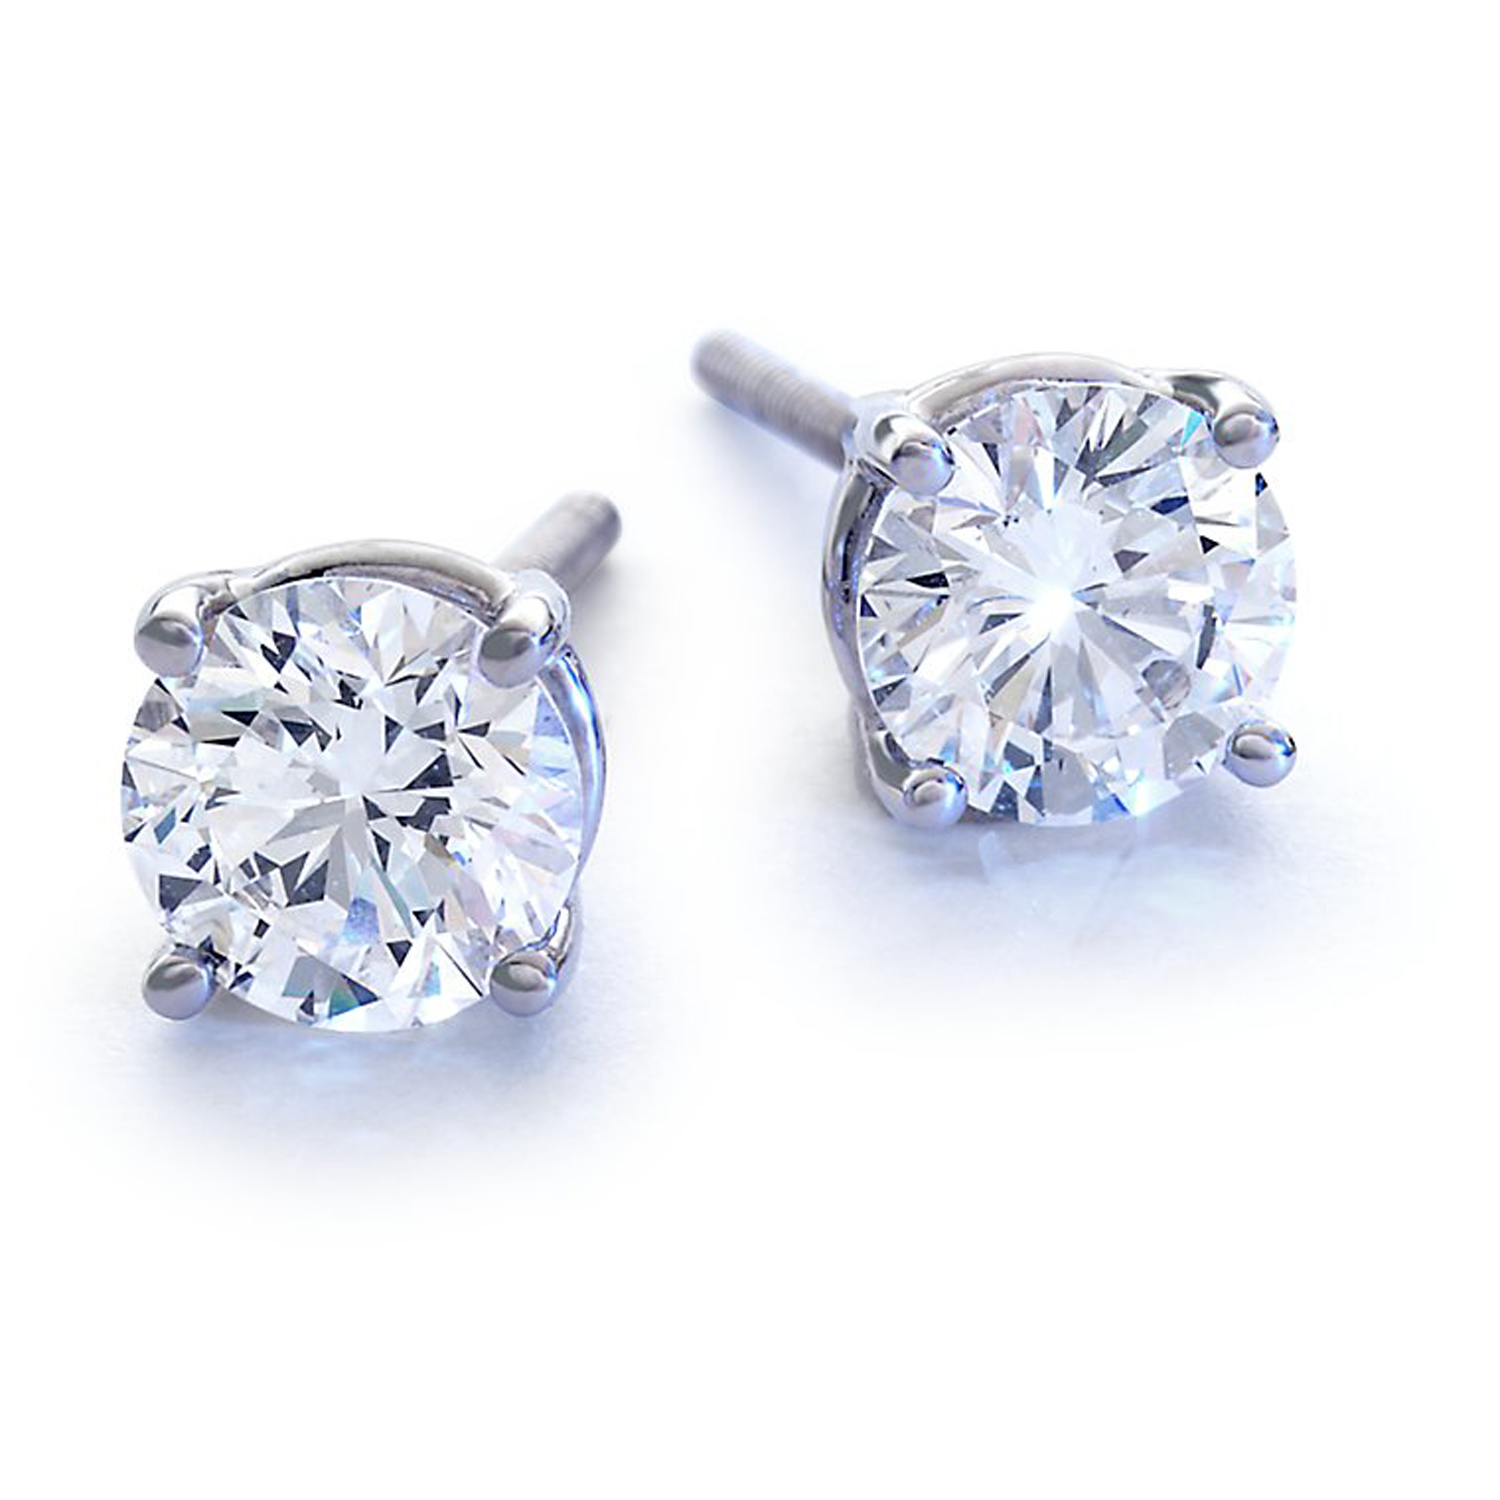 STUDA19548031413 1.05  Carat  - SI2 -  G Color  Diamond Studs  w Certificate White Gold